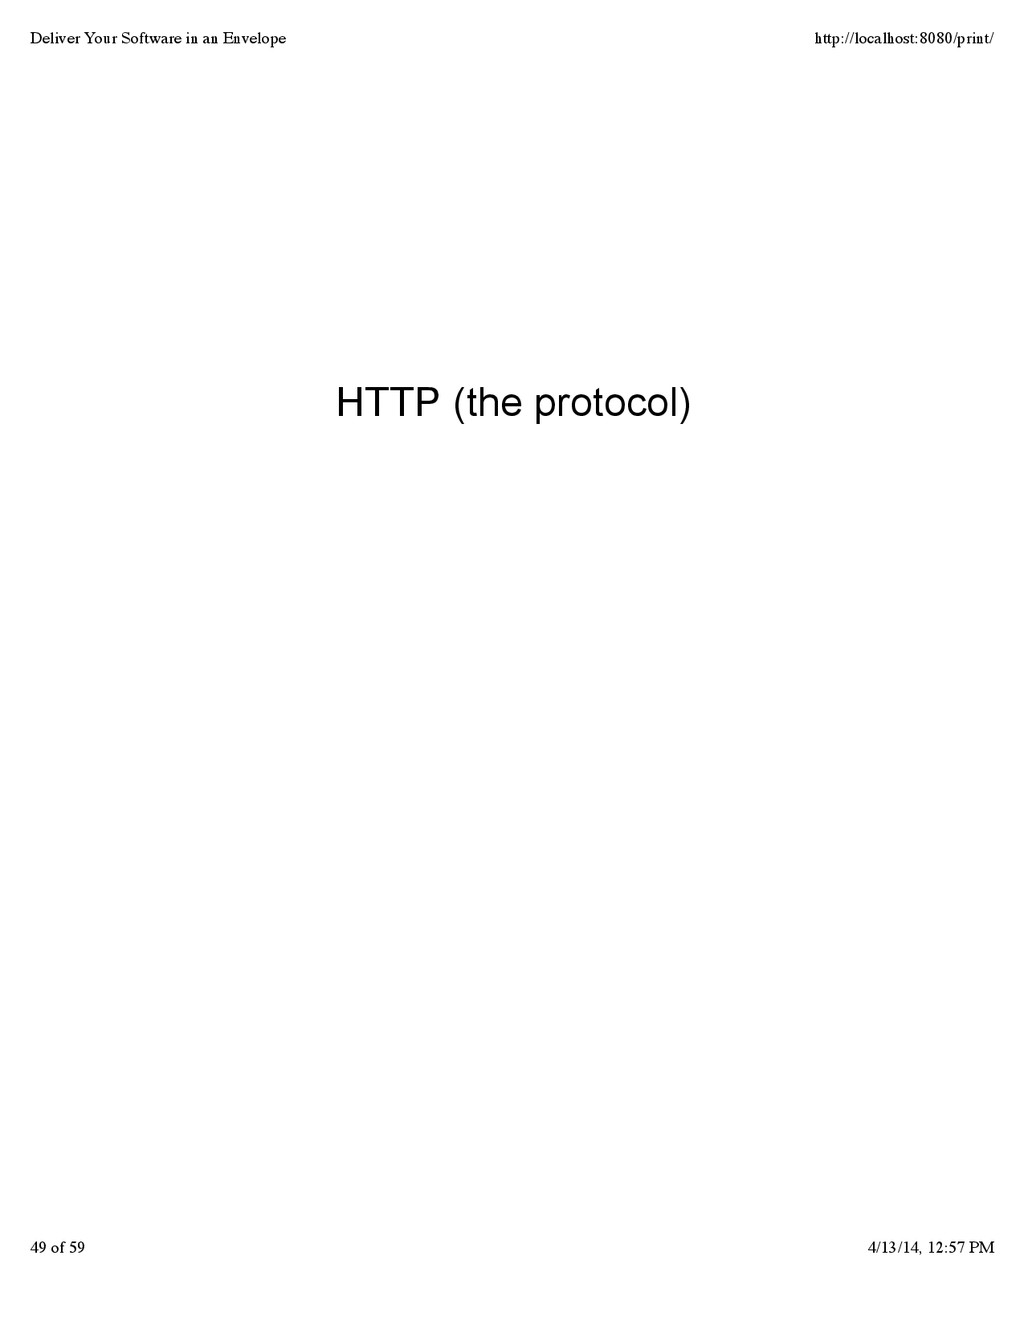 HTTP (the protocol) Deliver Your Software in an...